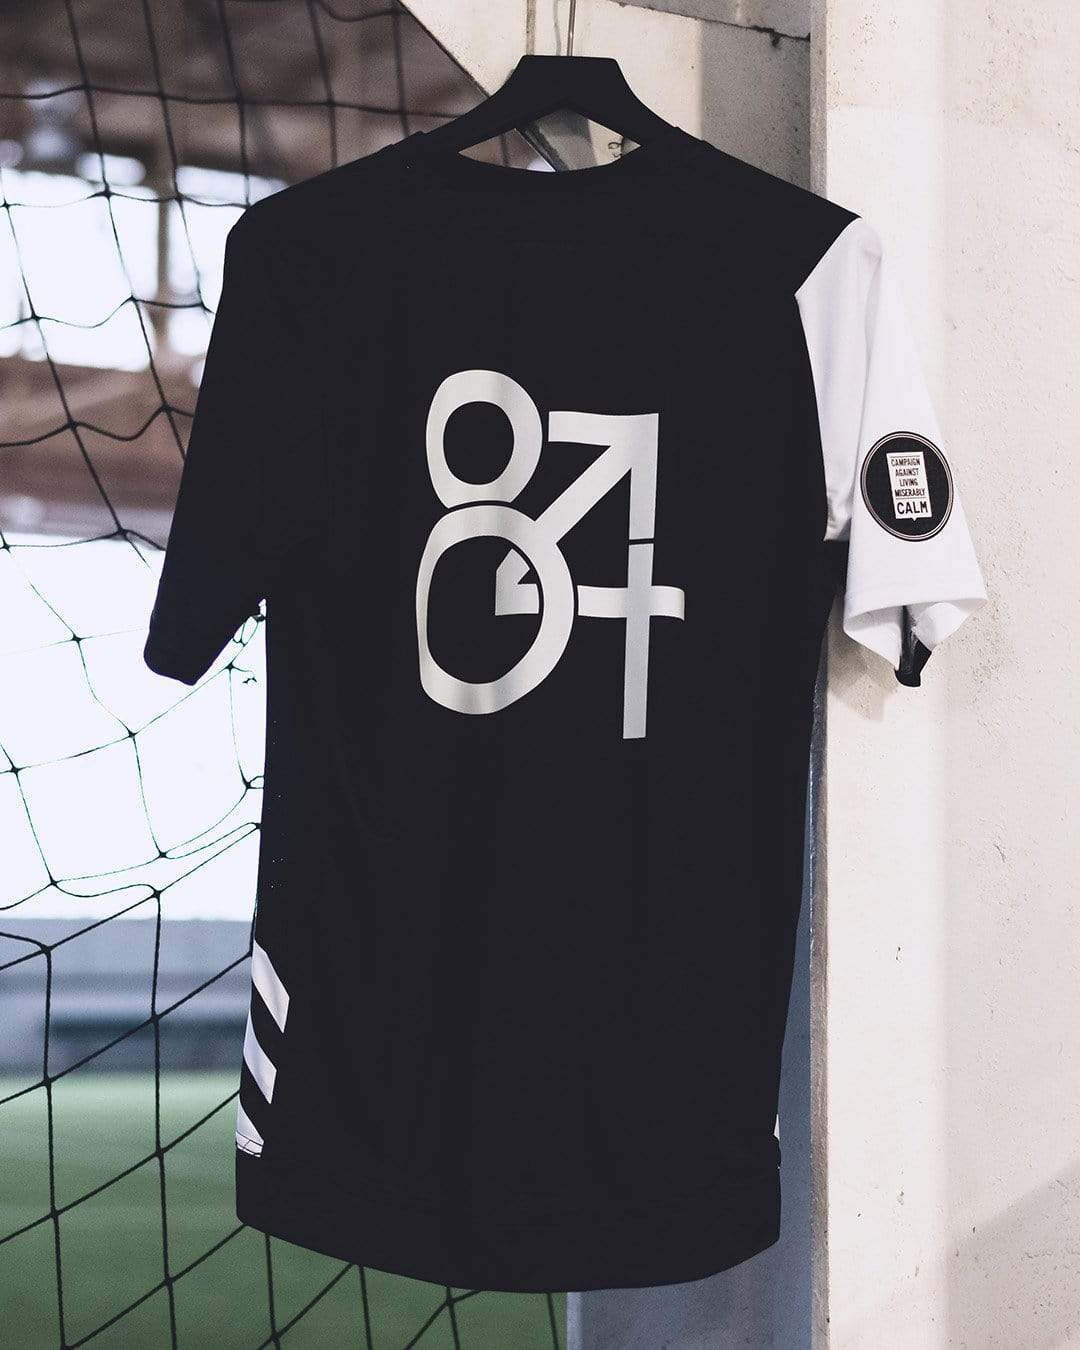 maillot-football-shirt-collective-calm-1